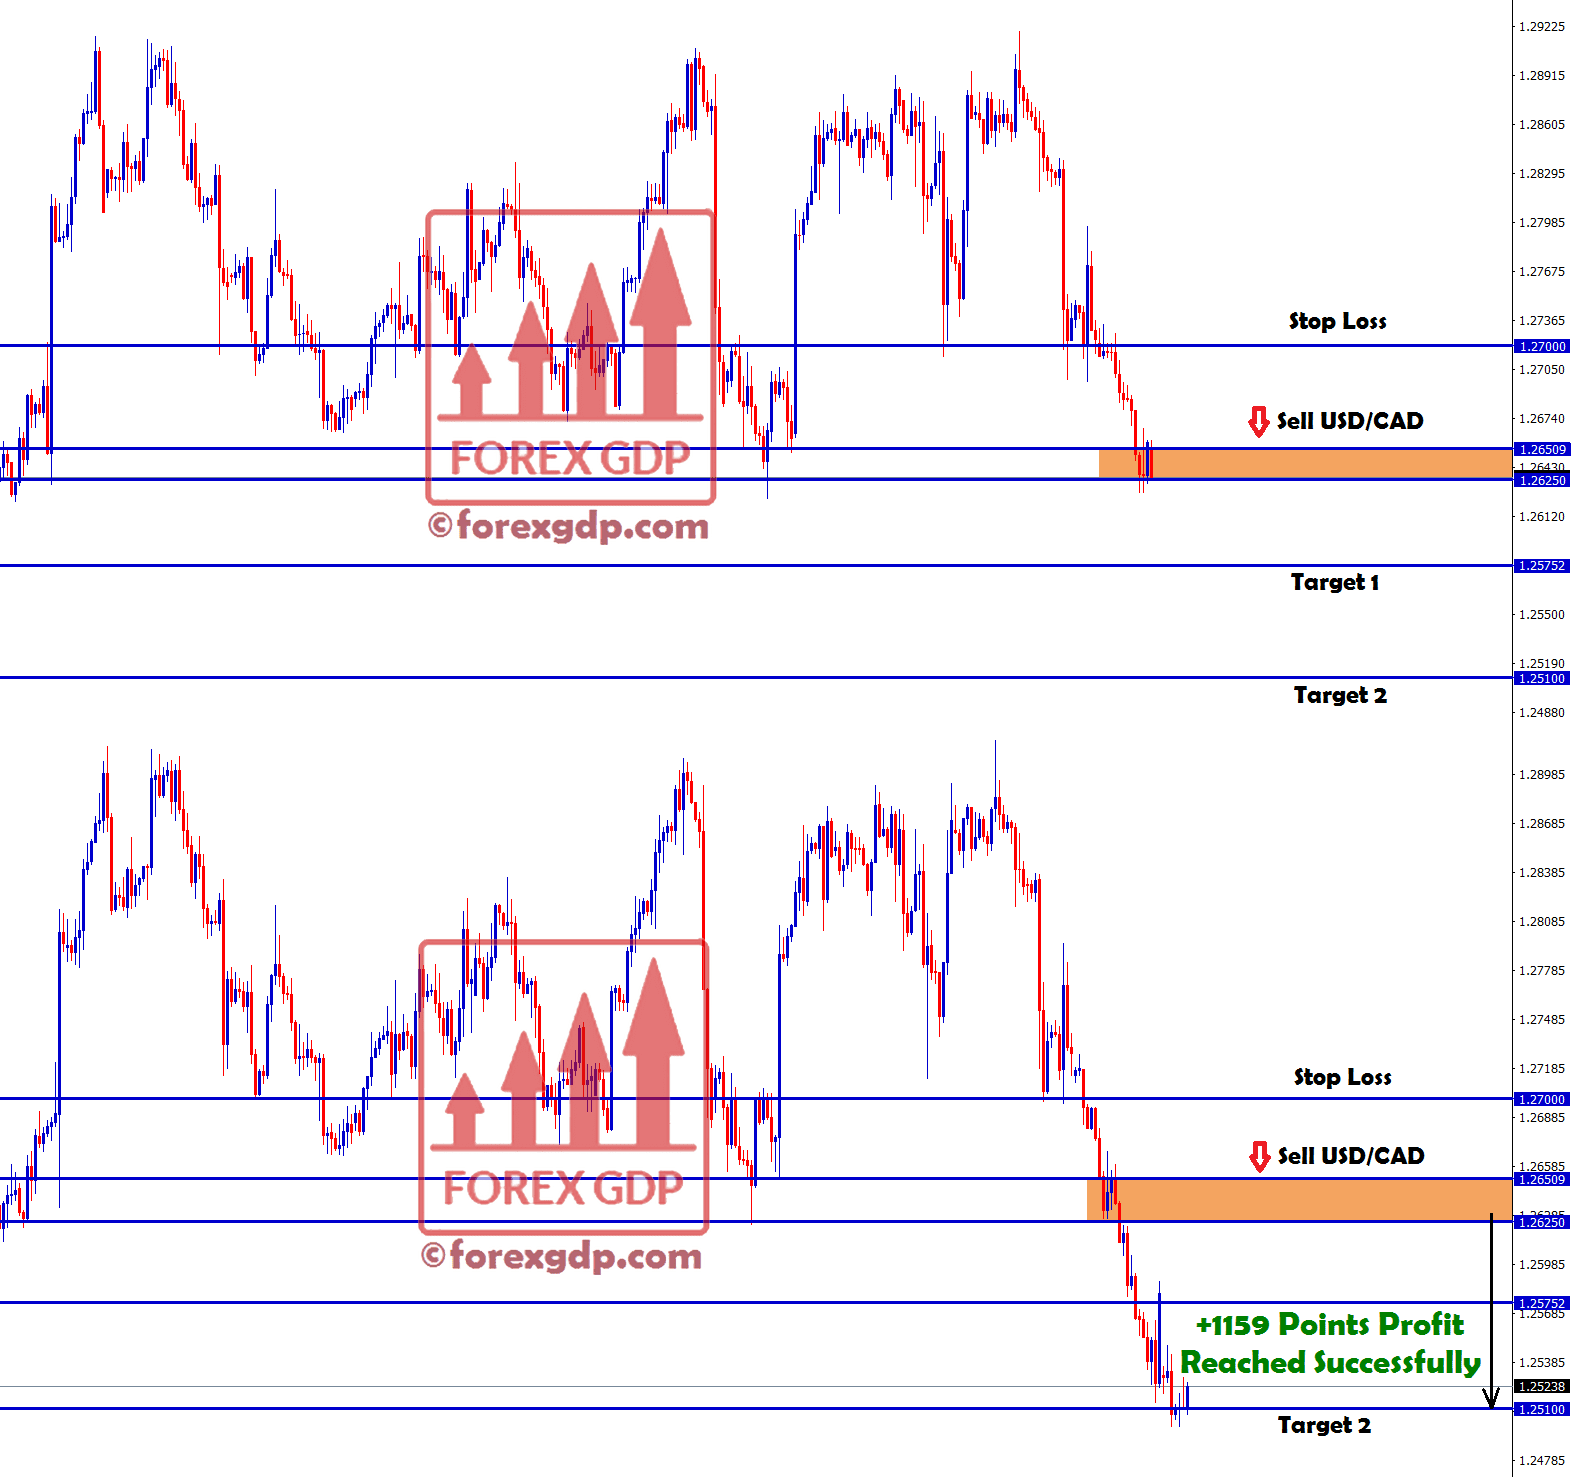 +1159 points profit made in usd cad sell signal